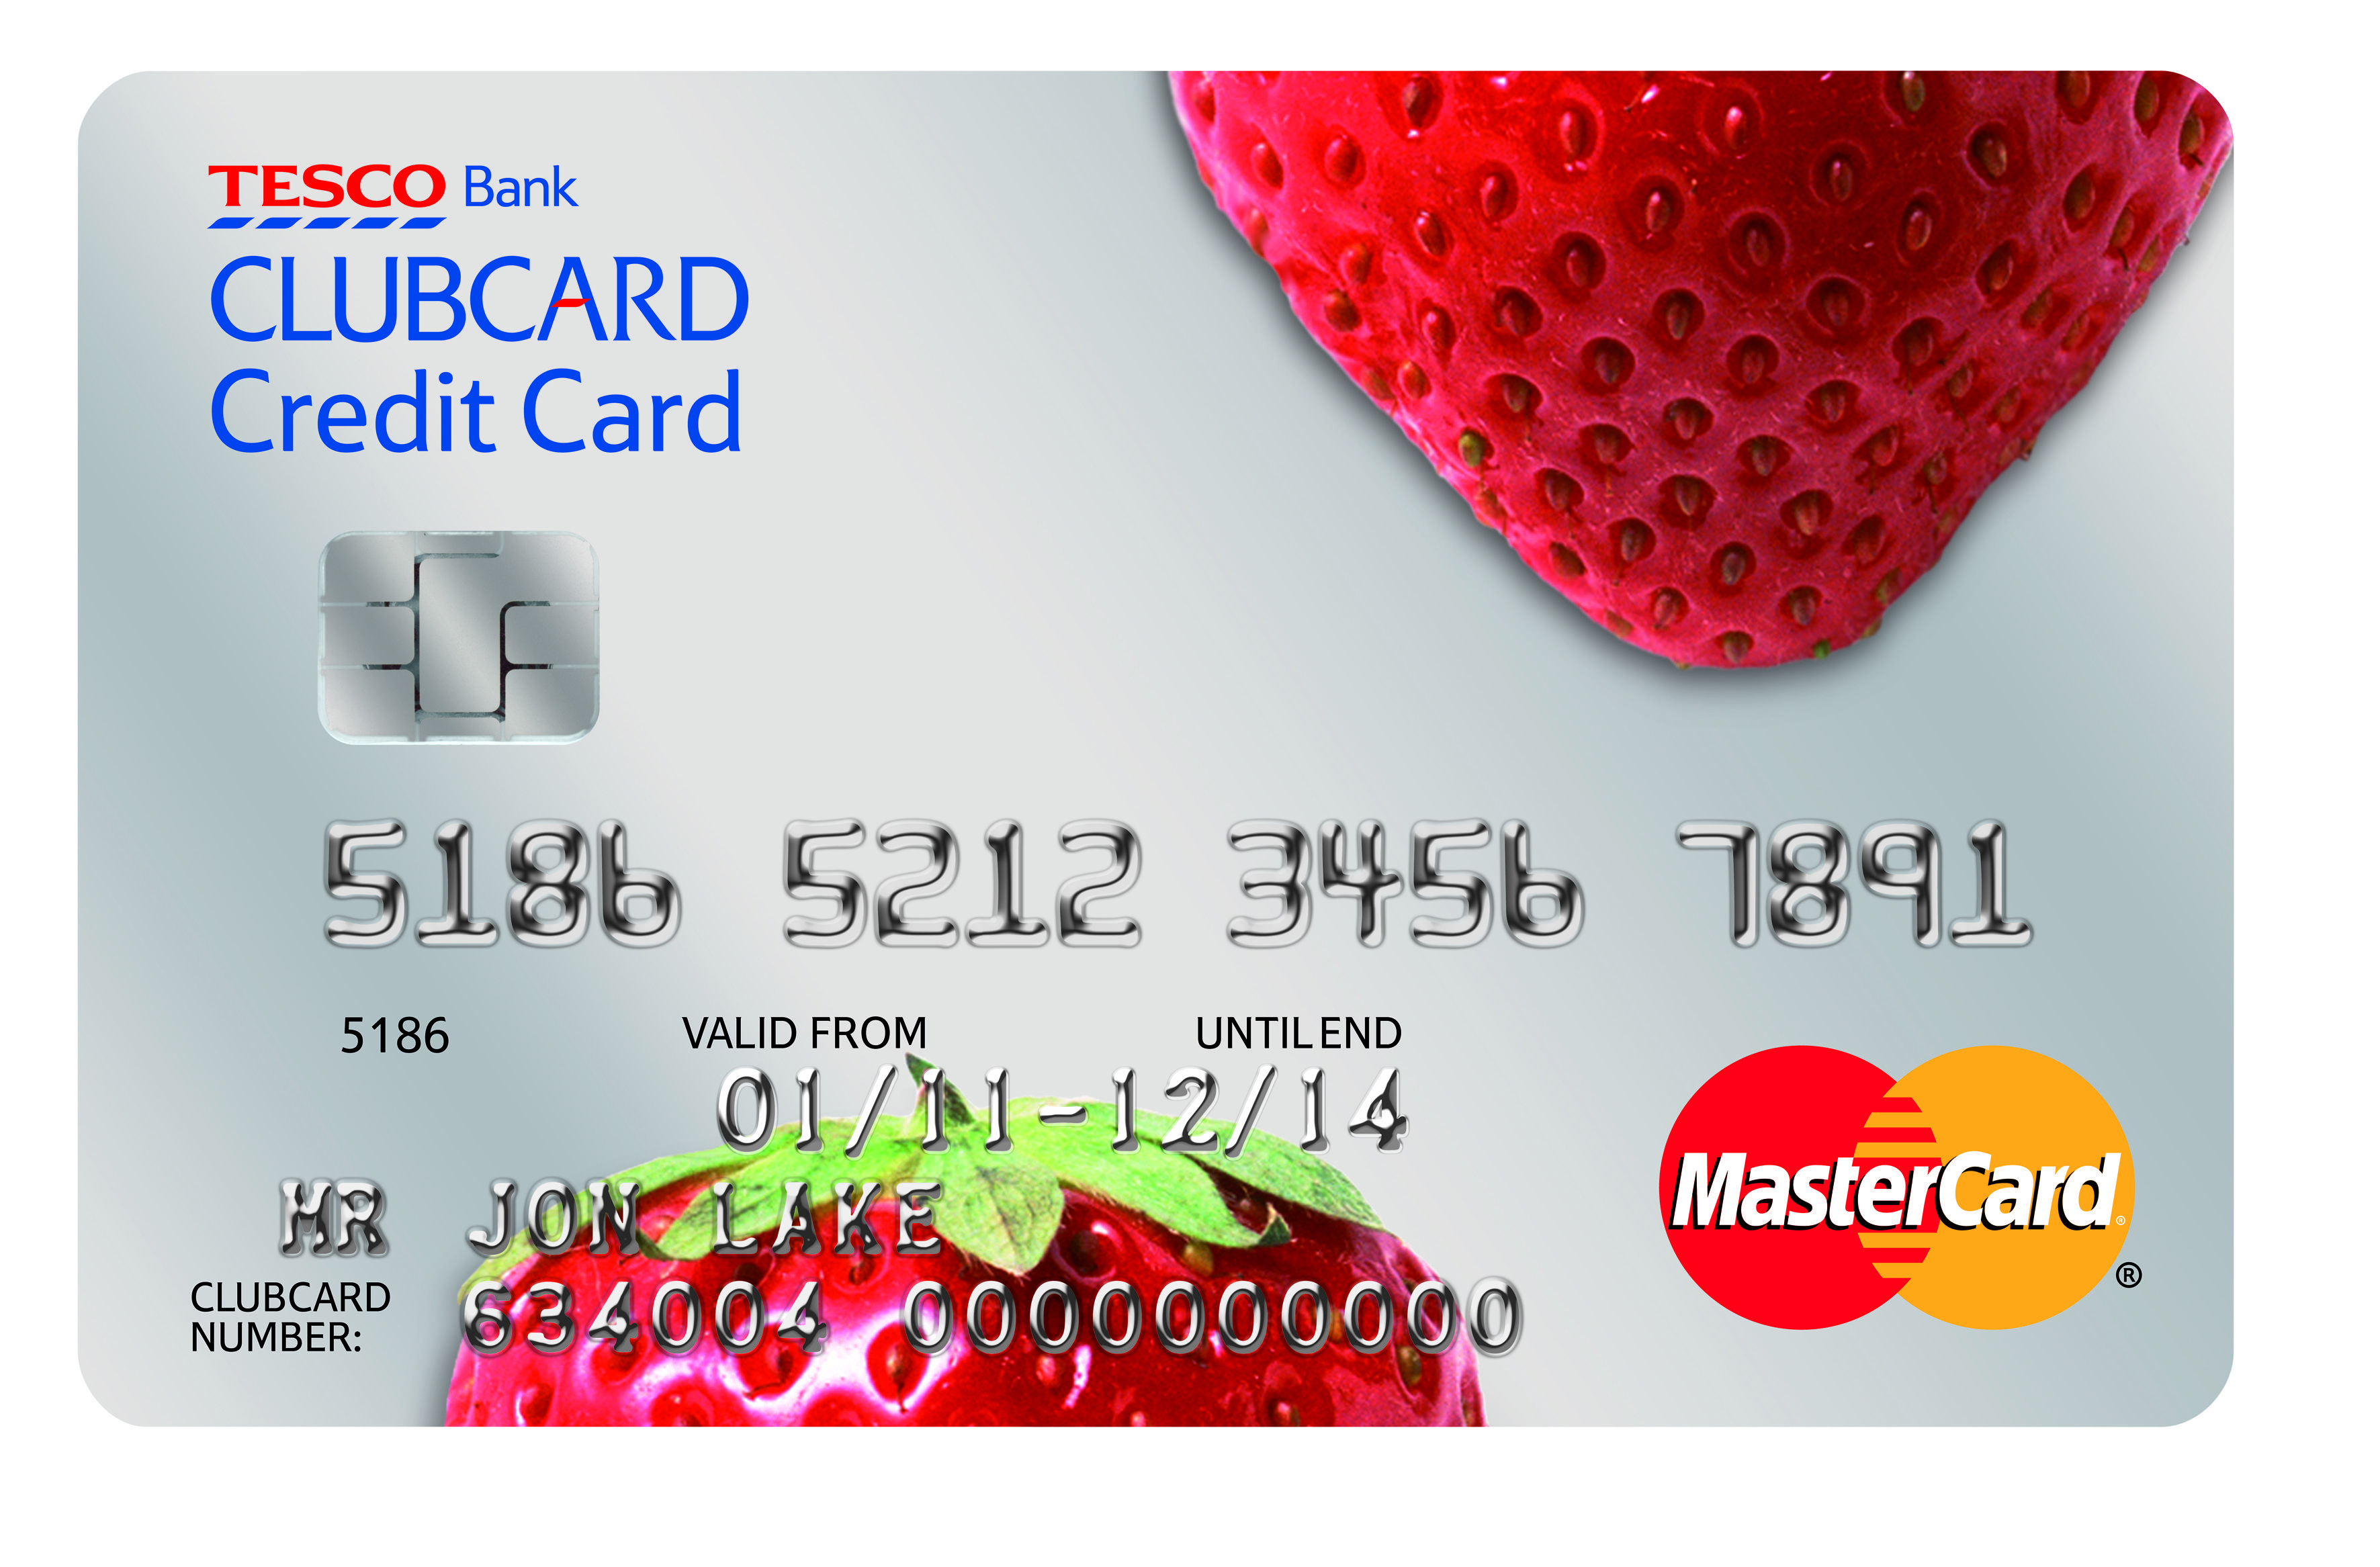 Buy travel money with a Tesco credit card and get up to 56